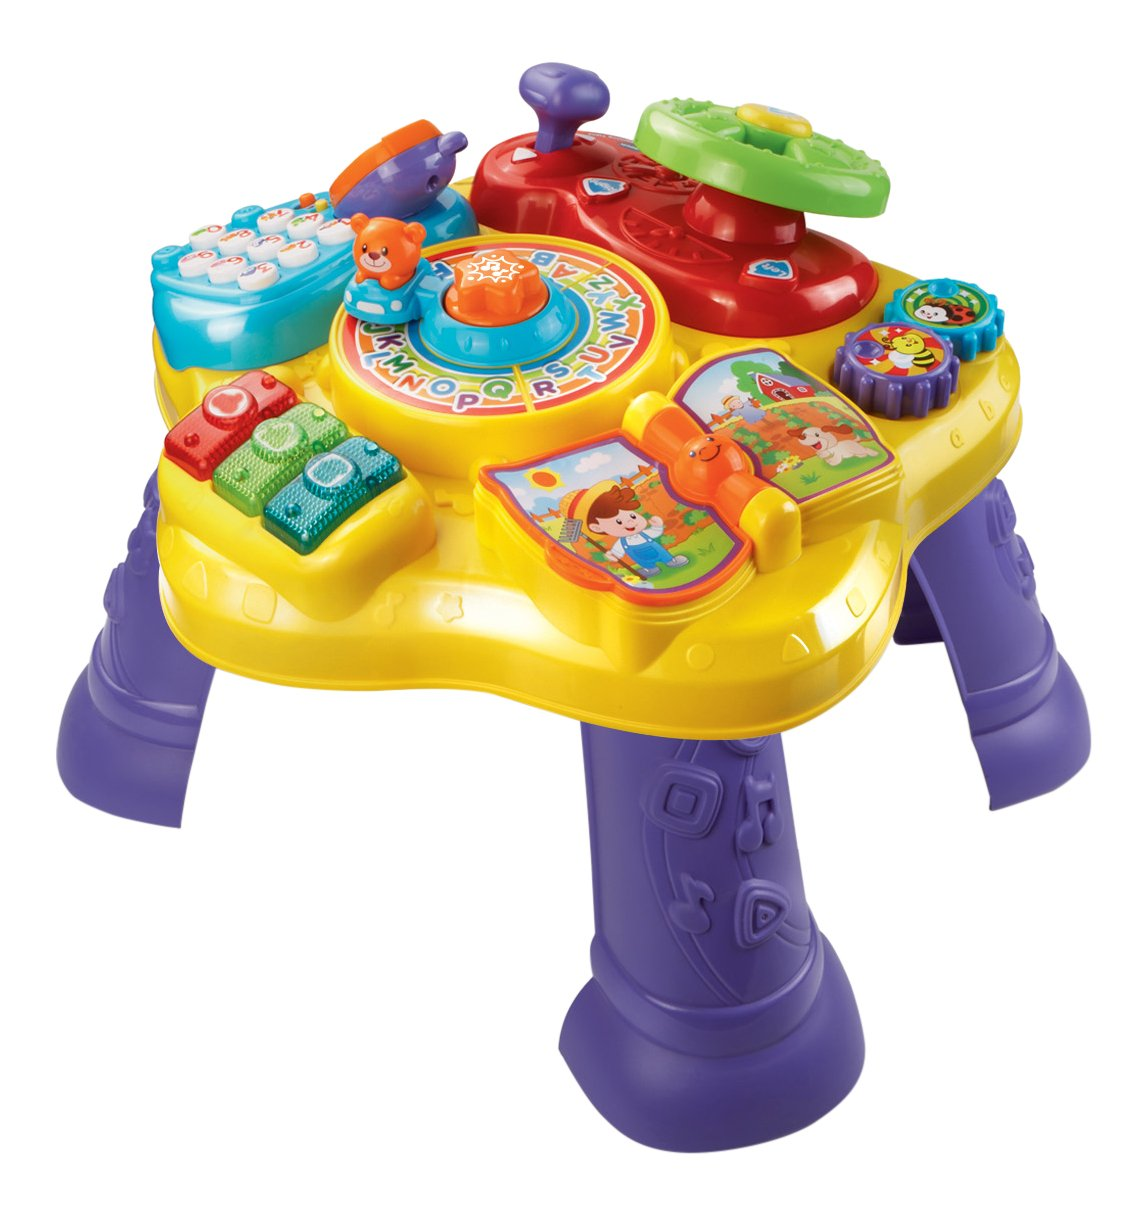 VTech Magic Star Activity Learning Table